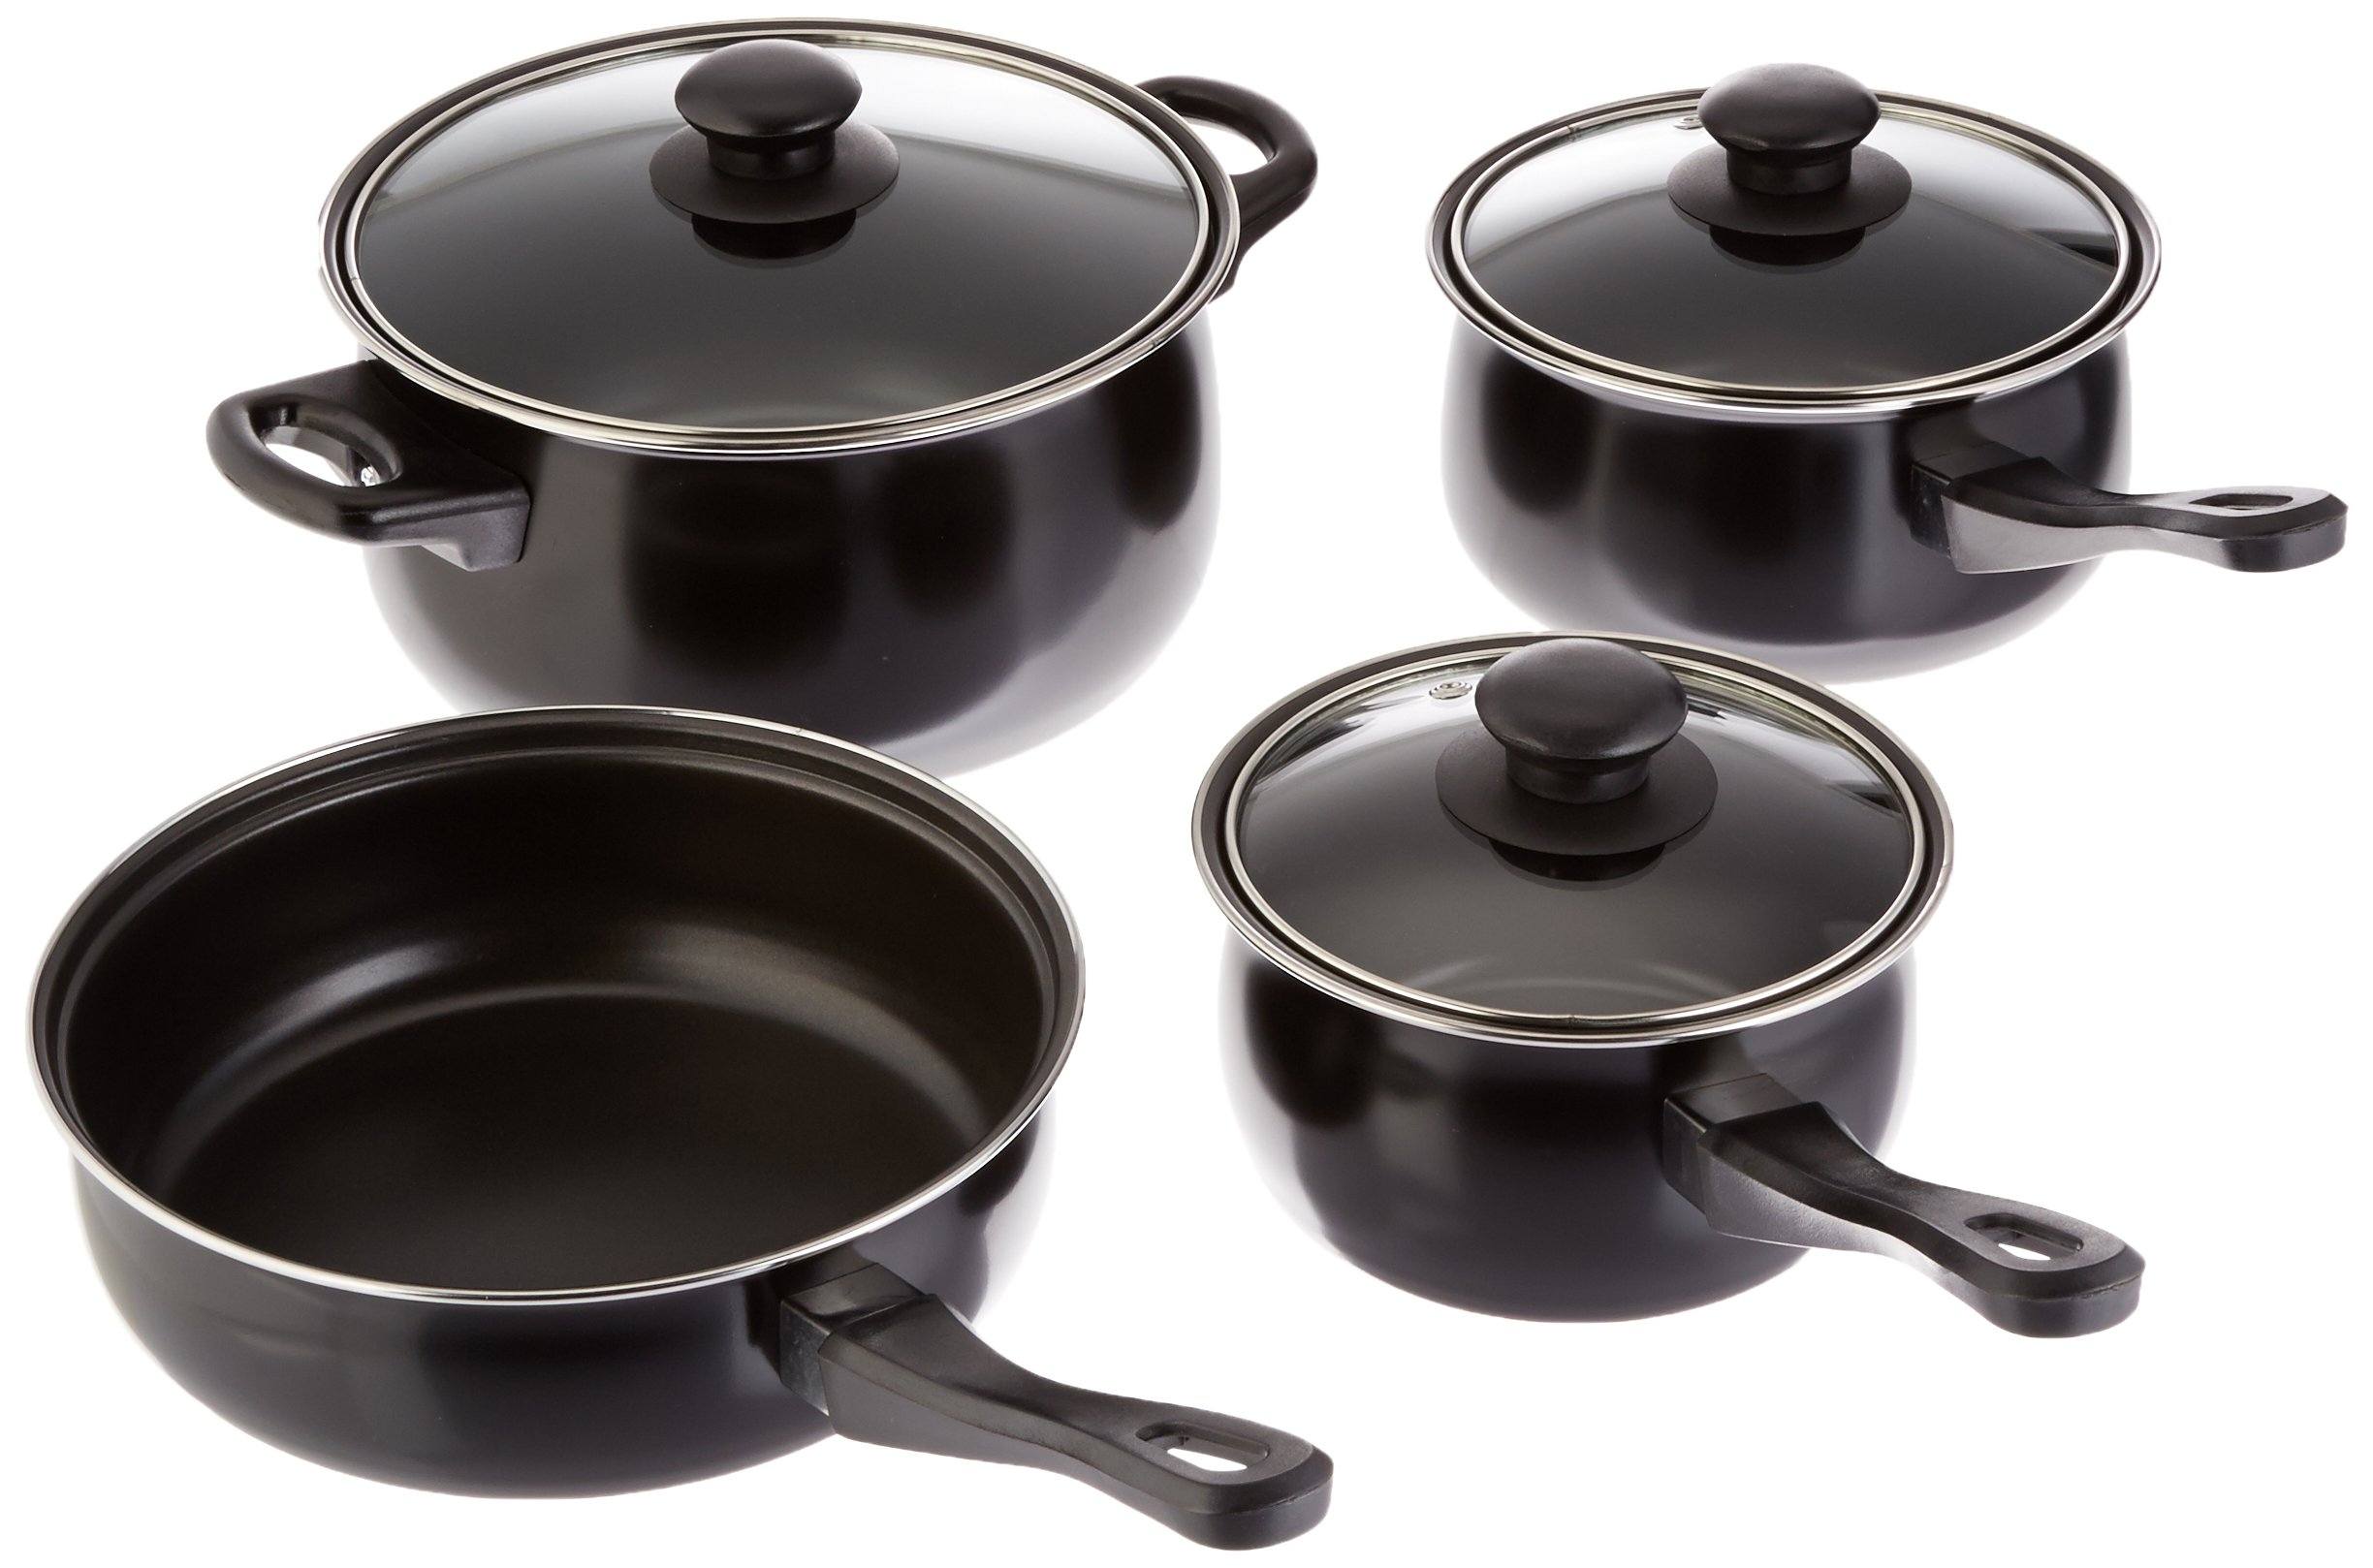 Gibson Everyday 83681.07 Chef Du Jour 7-Piece Cookware Set, Black